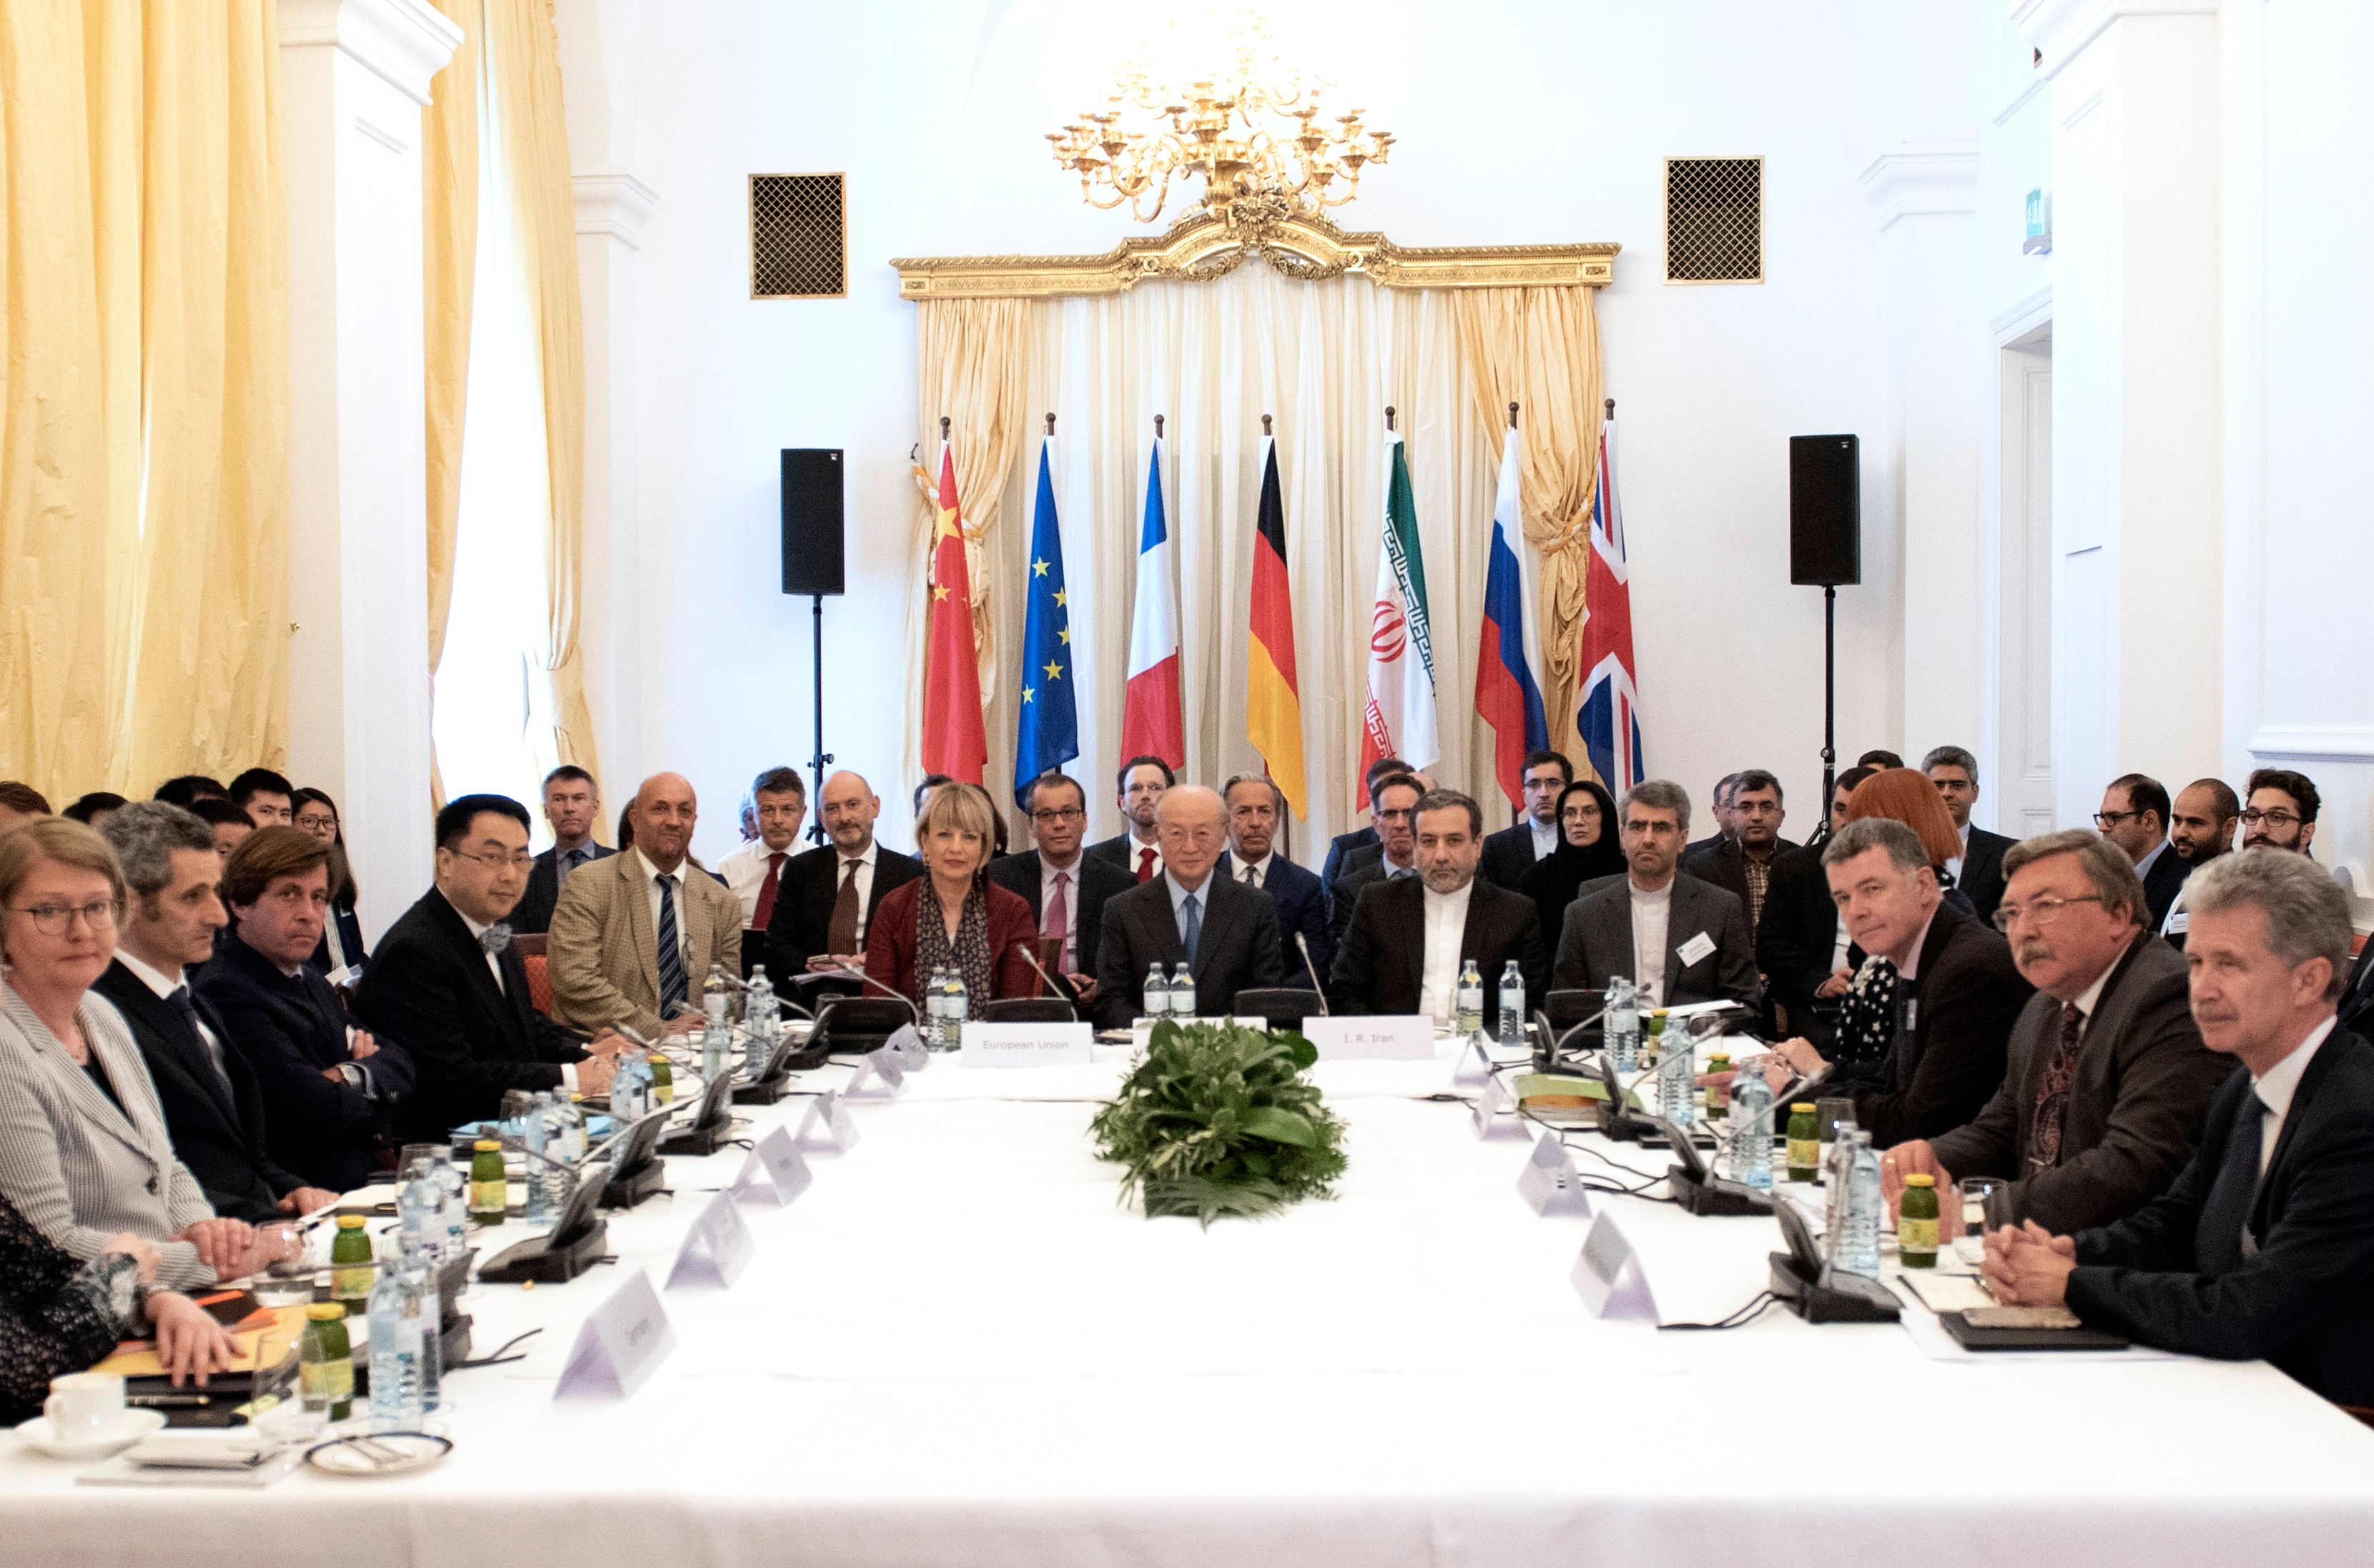 (CL to CR) Secretary General of the European Union External Action Service (EEAS) Helga Schmid, Director General of the International Atomic Energy Agency IAEA, Yukiya Amano and political deputy at the Ministry of Foreign Affairs of Iran Abbas Araghchi attend a special meeting of the Joint Commission of parties to the JCPOA (Joint Comprehensive Plan of Action) on Iran's nuclear deal at Coburg palace in Vienna, Austria on May 25, 2018. (Photo credit should read JOE KLAMAR/AFP/Getty Images)